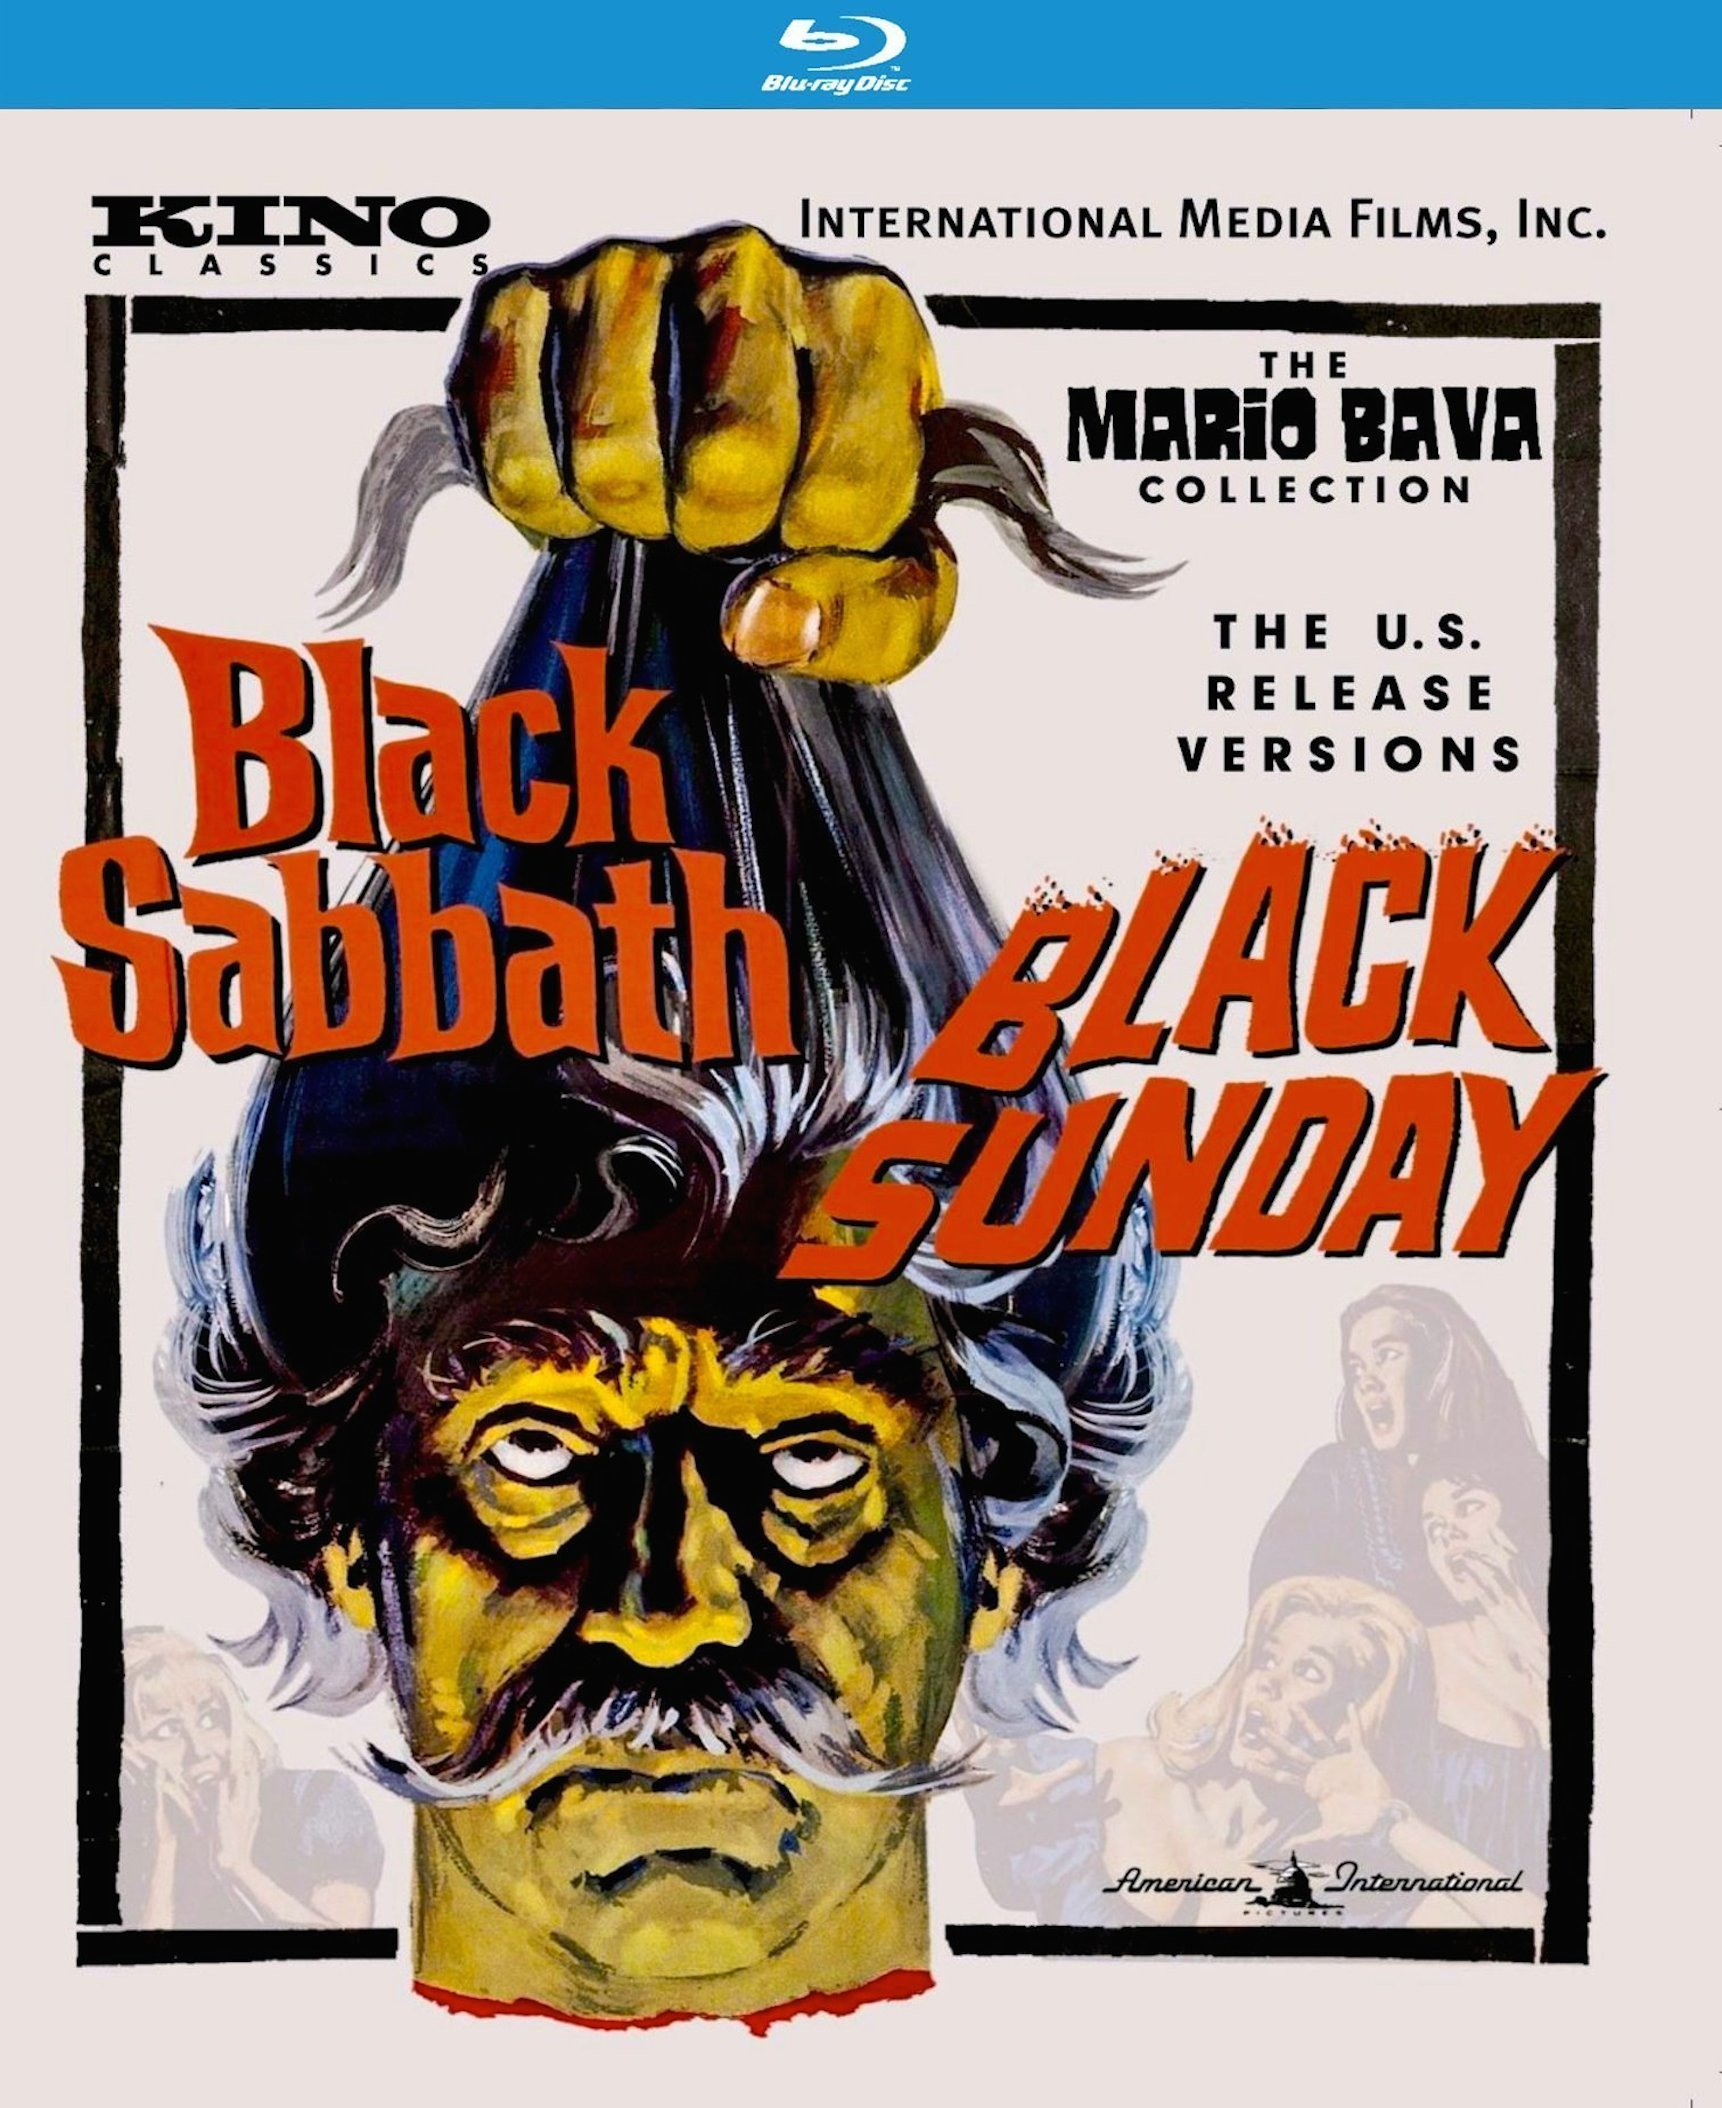 Kino Lorber Cancels Black Sabbath Black Sunday Blu Ray Release See more ideas about black sabbath, sabbath, black sabbath albums. black sabbath black sunday blu ray release